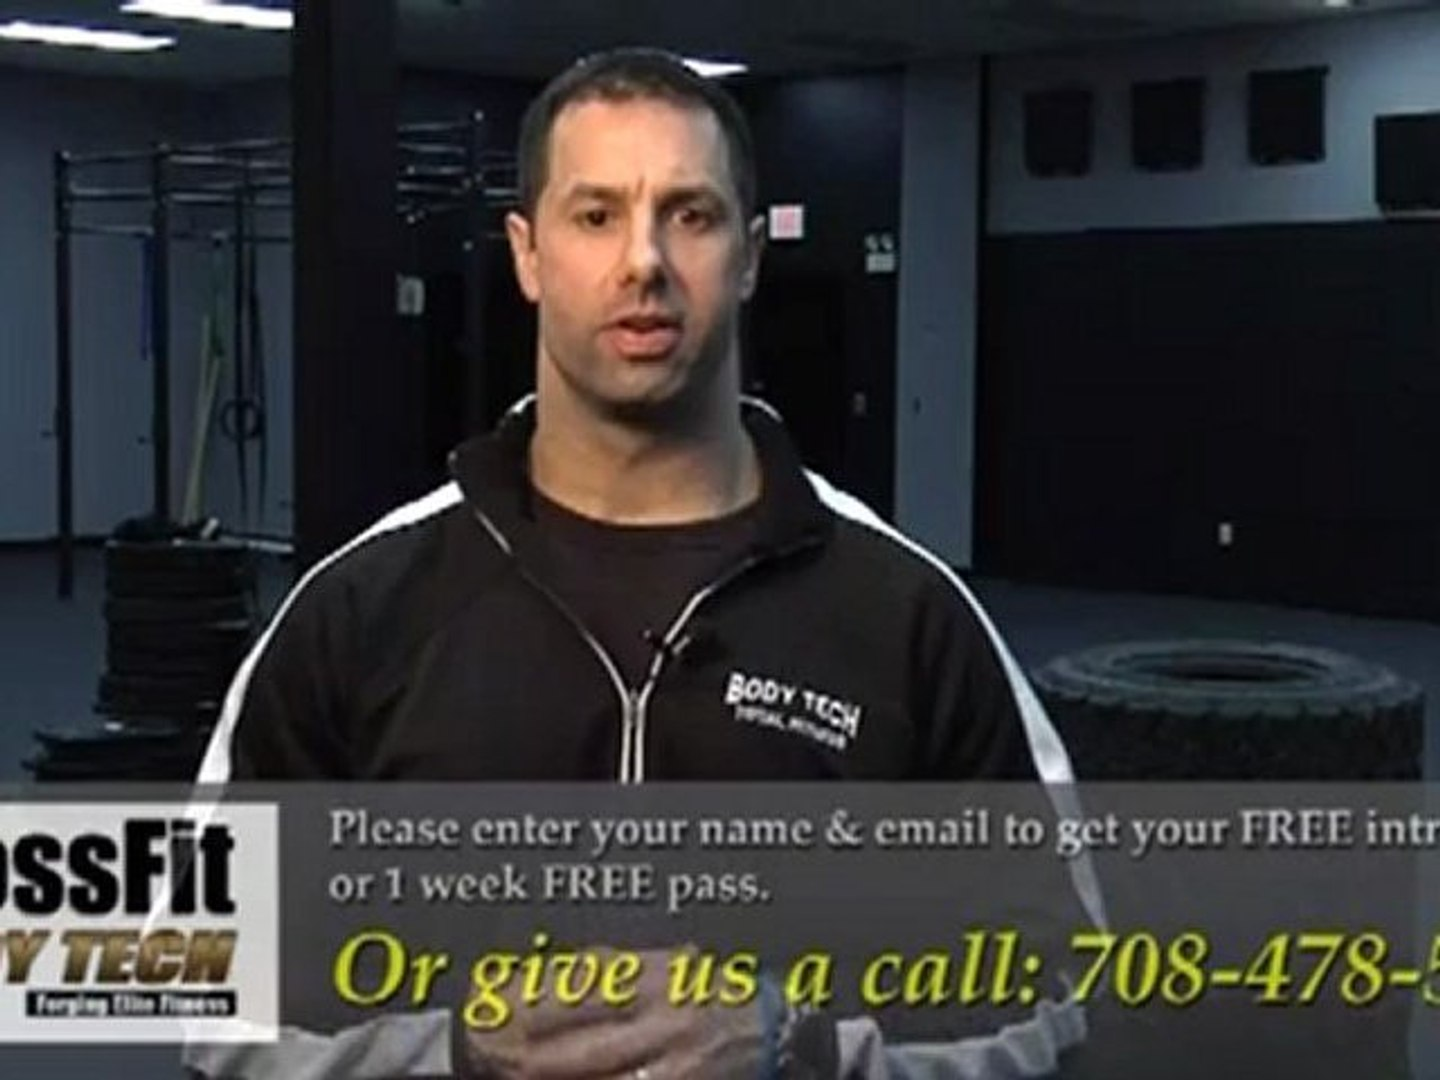 CrossFit Body Tech in New Lenox, IL l CrossFit Body Tech in